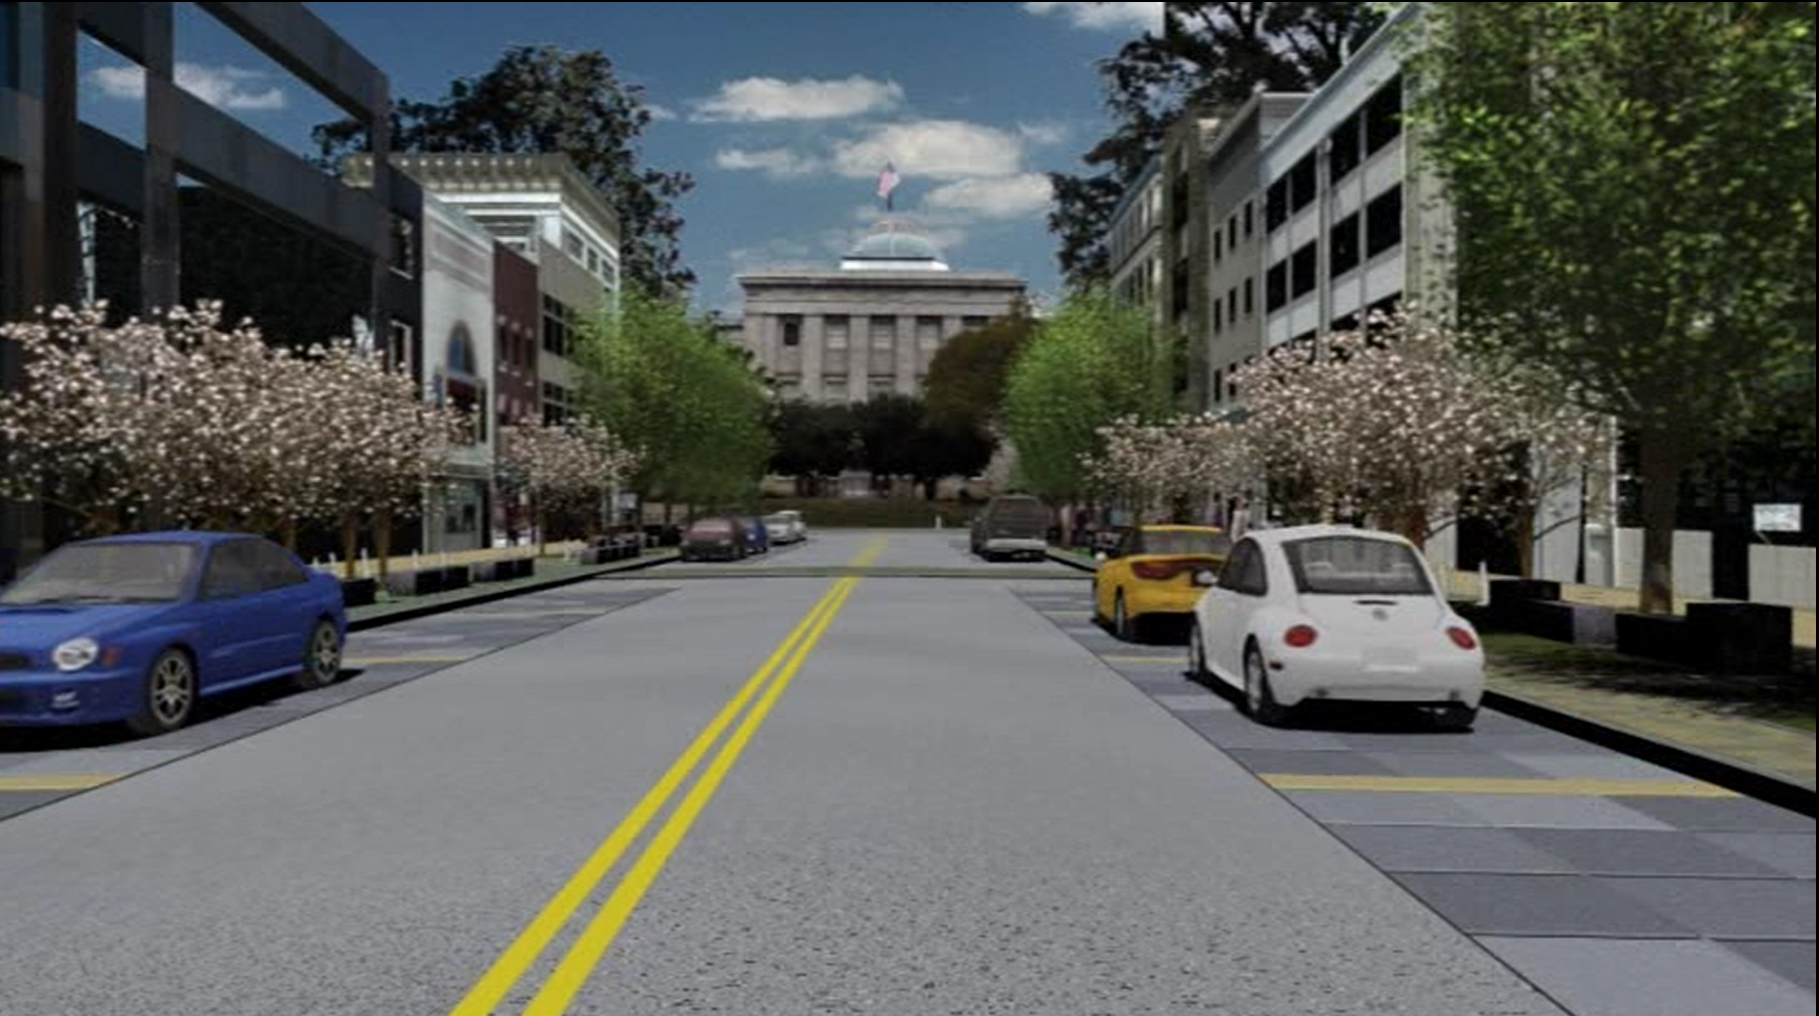 Downtown Revitalization Covers Photo : Fayetteville street downtown revitalization castleviz